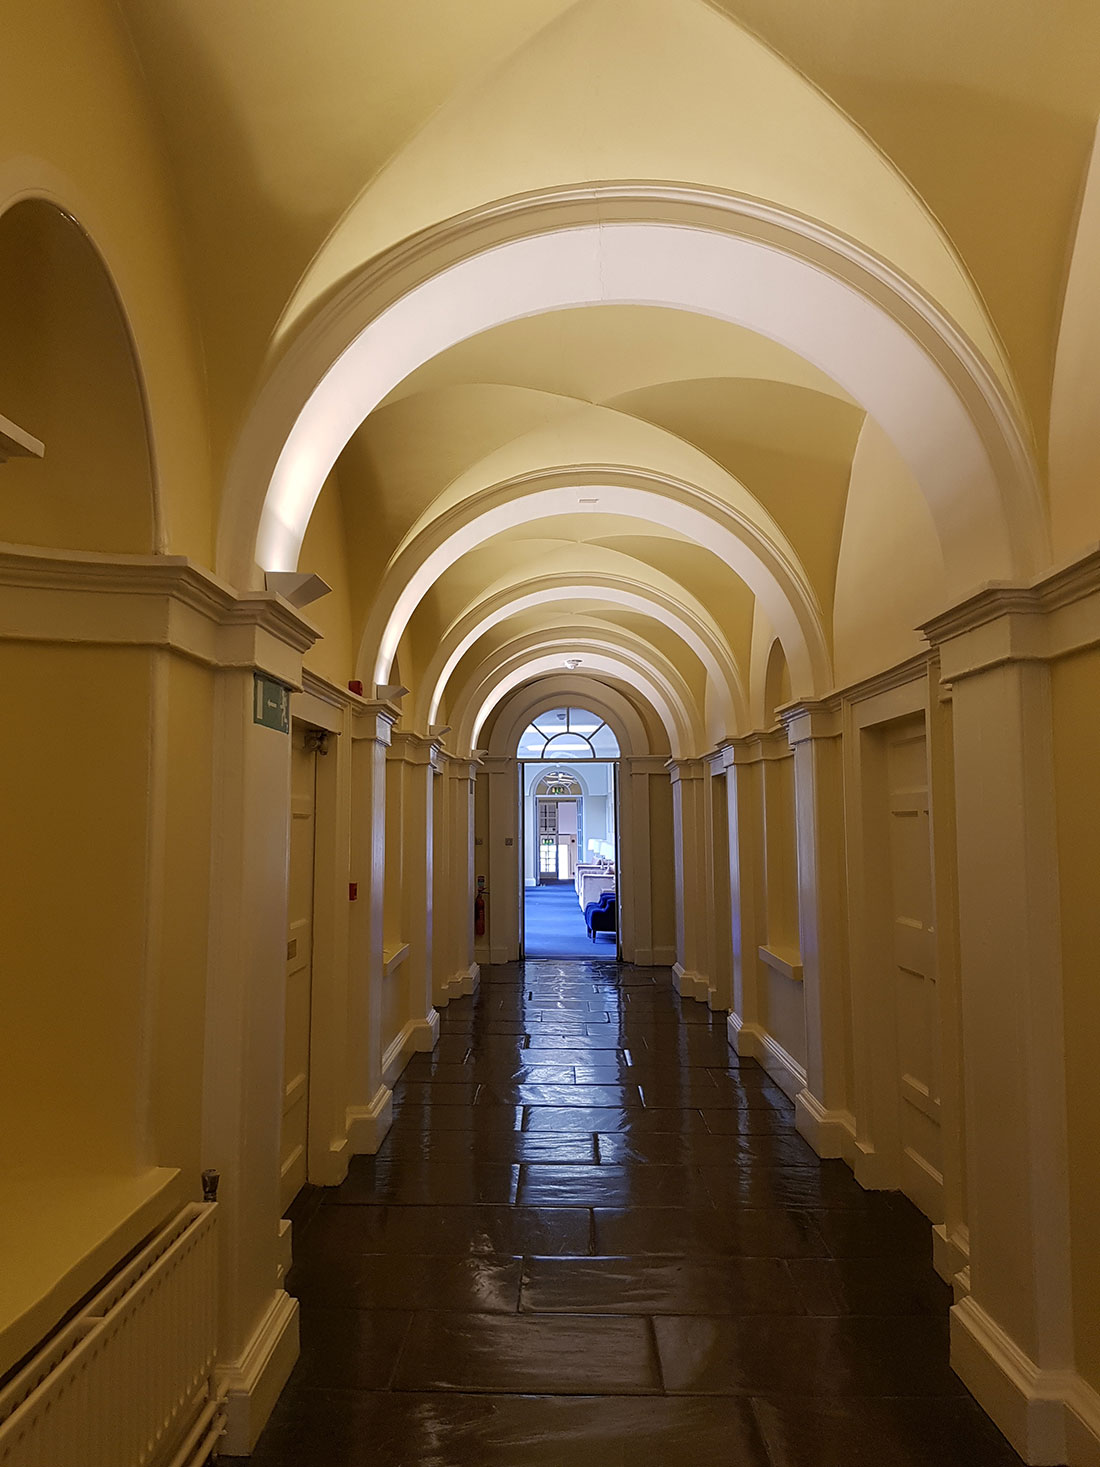 Bega Wall washer Fittings in the Law Society of Ireland